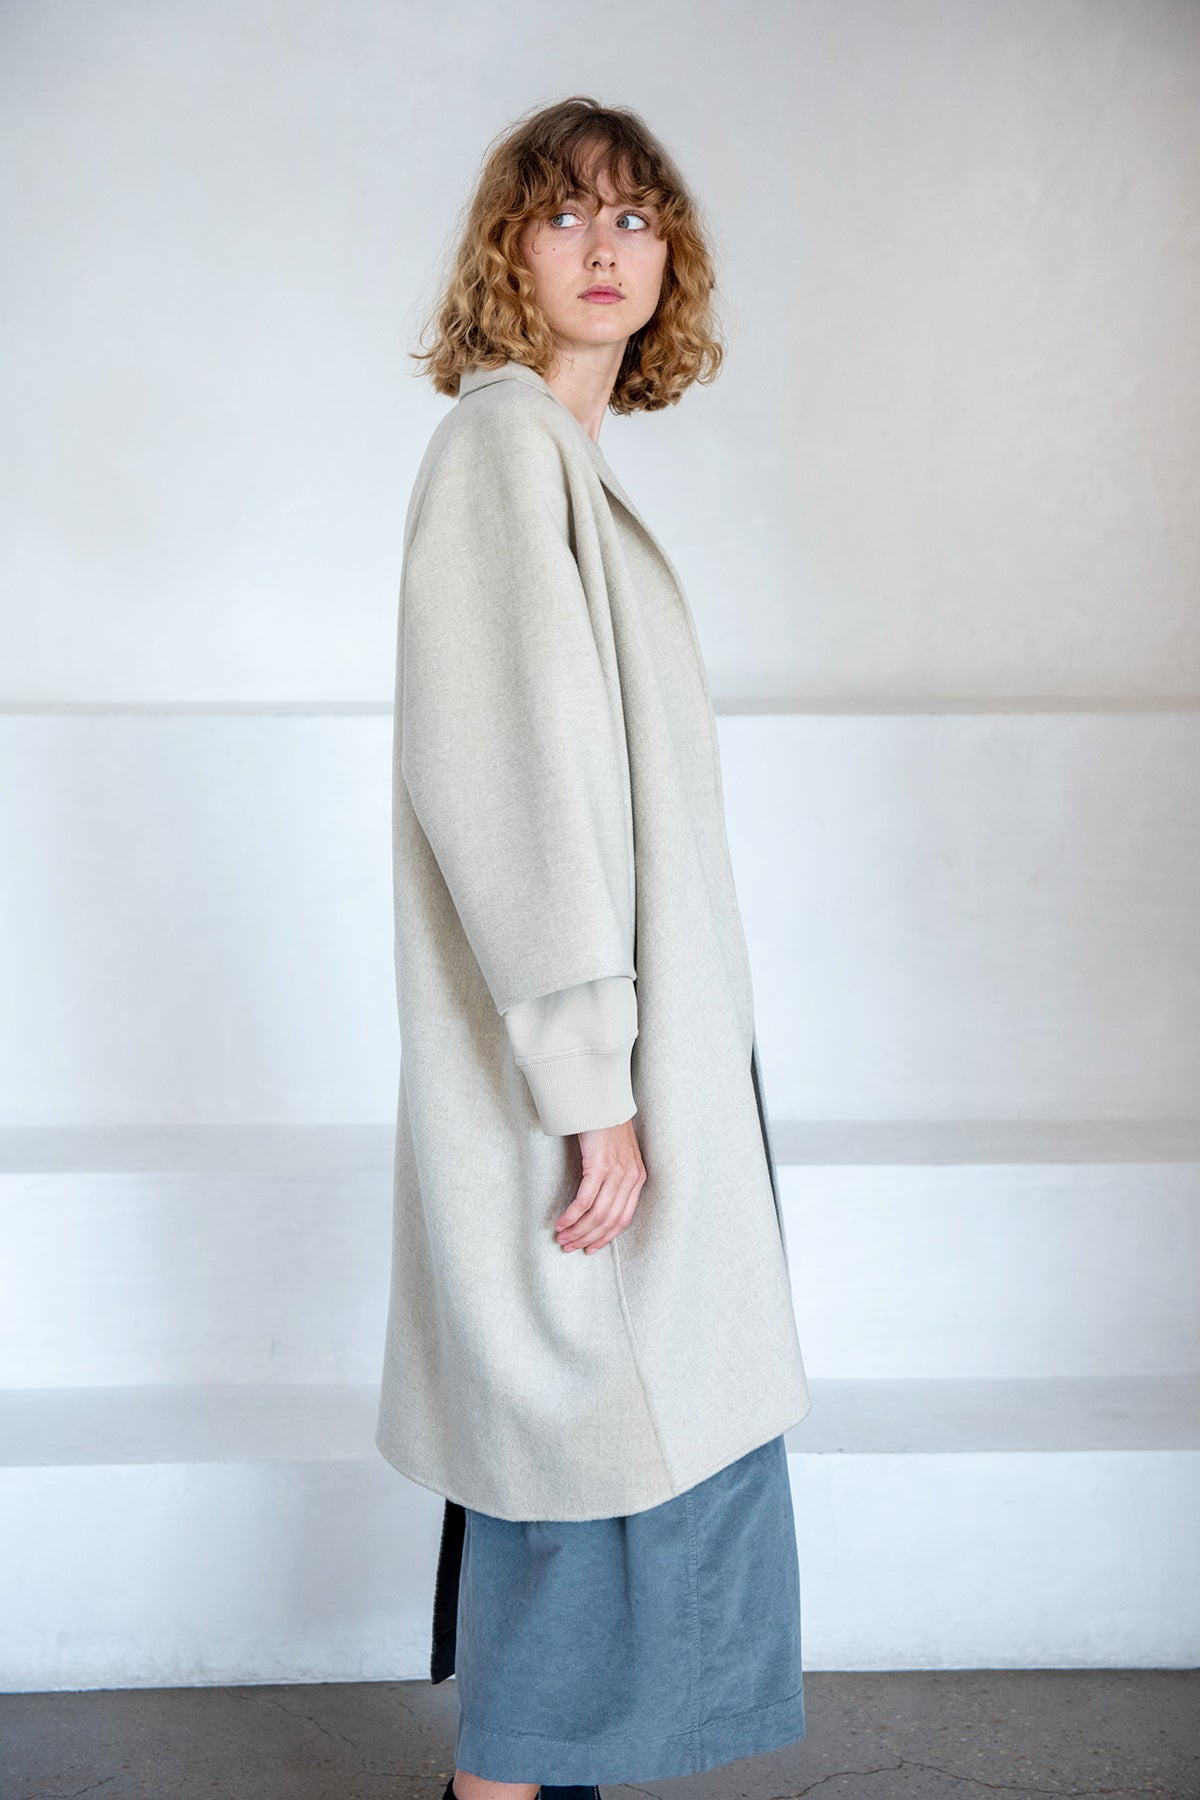 Sofie D'Hoore - CARRA double faced wool/cashmere jacket, oatmeal